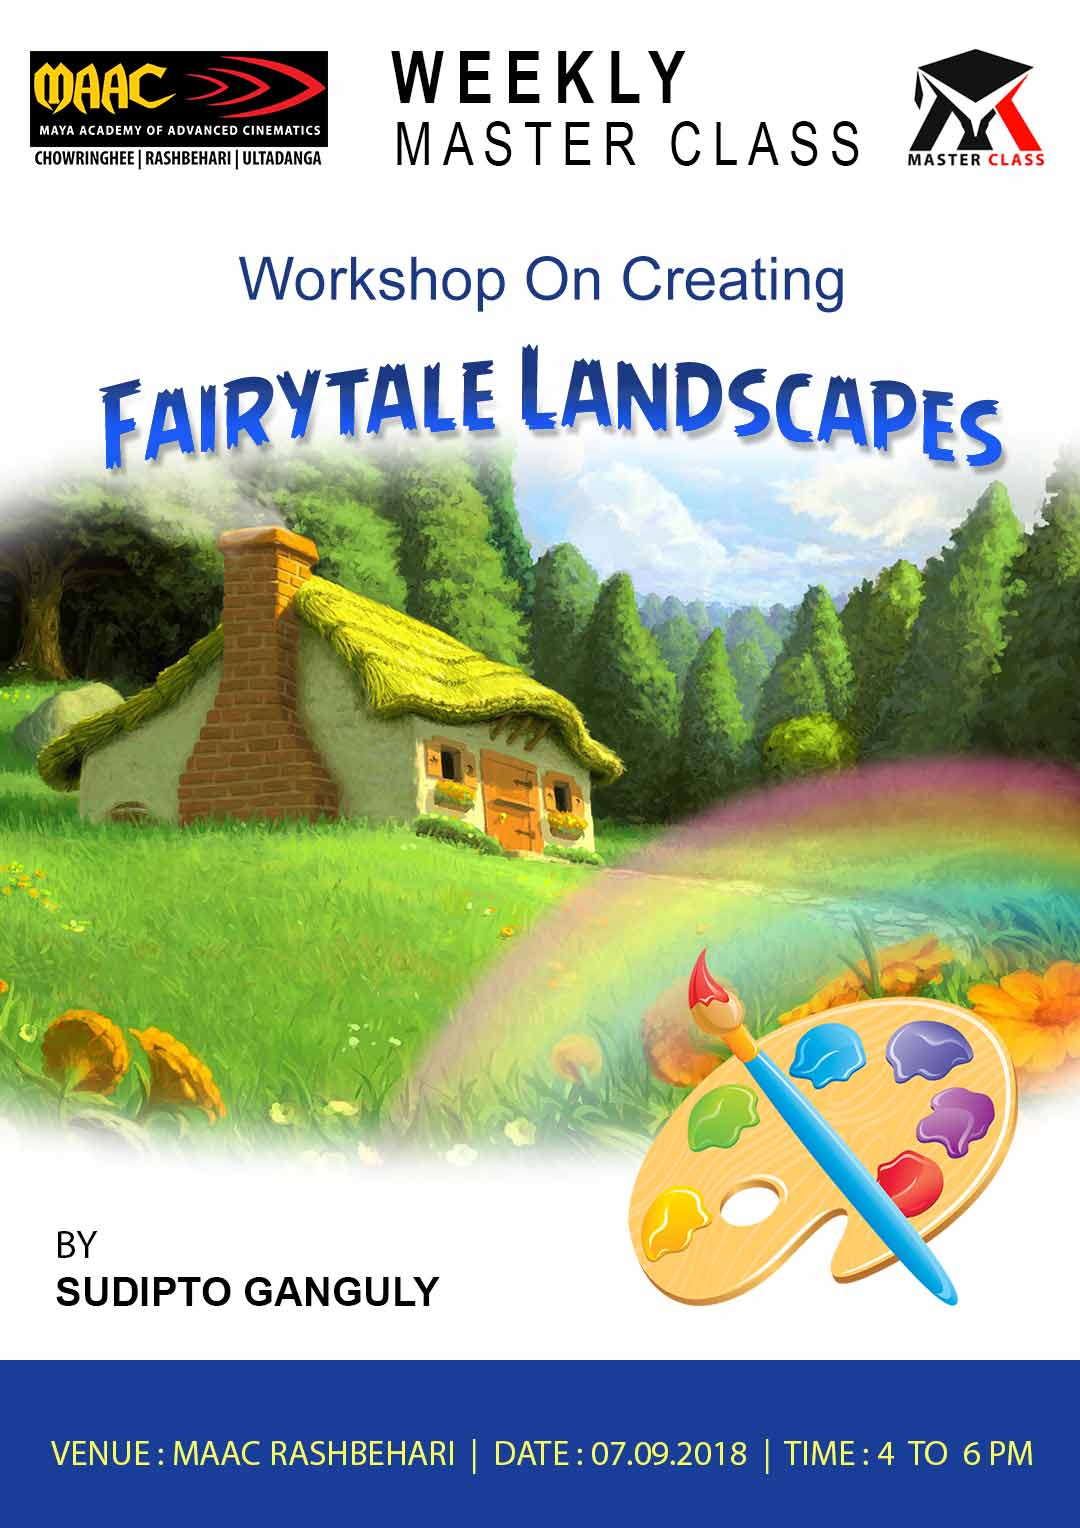 Weekly Master Class on Workshop On Creating Fairytale Landscapes